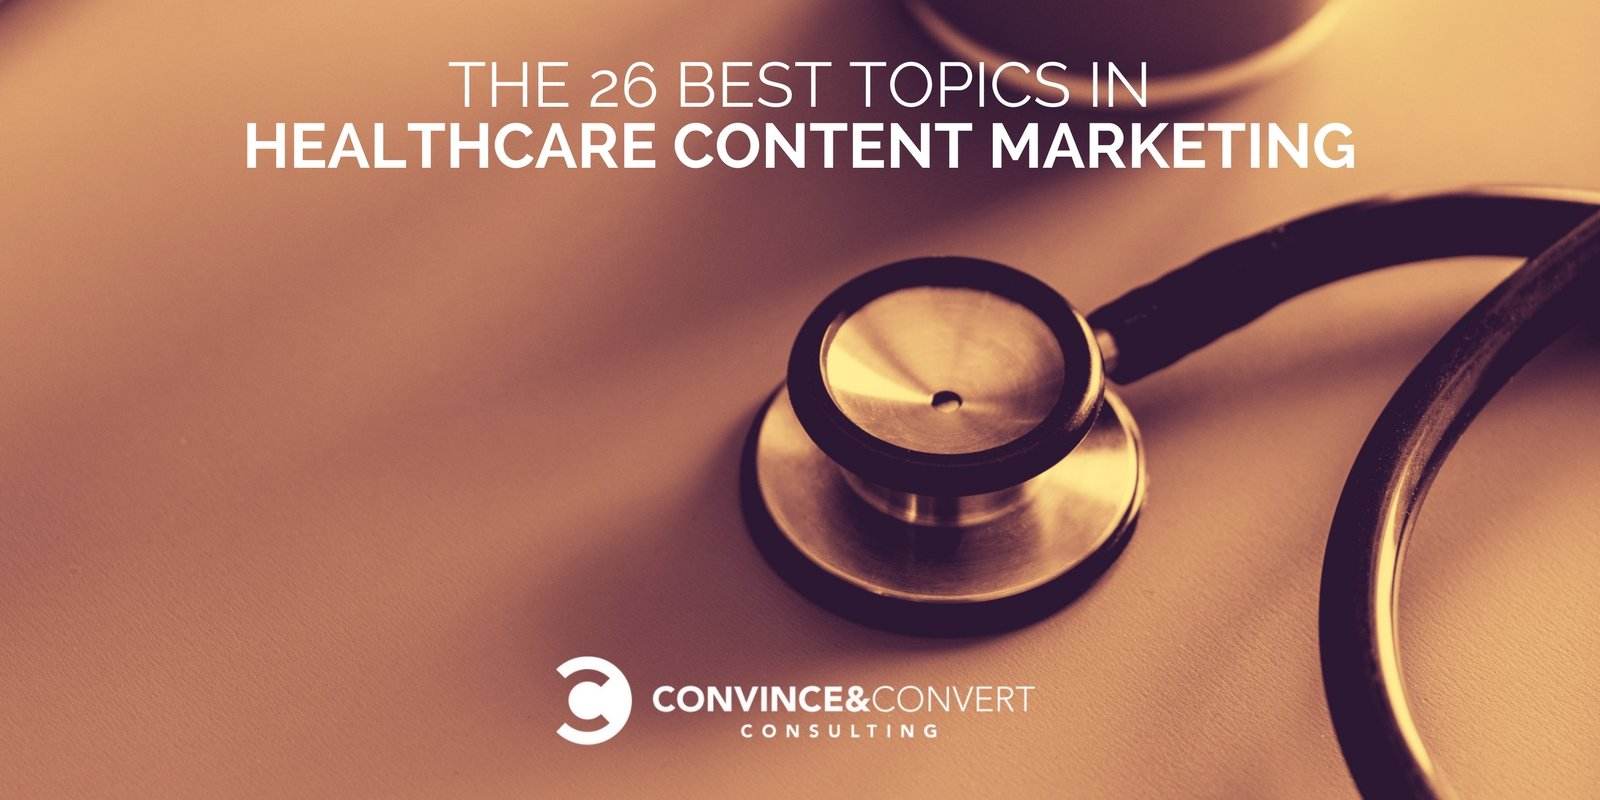 The 26 Best Topics in Healthcare Content Marketing